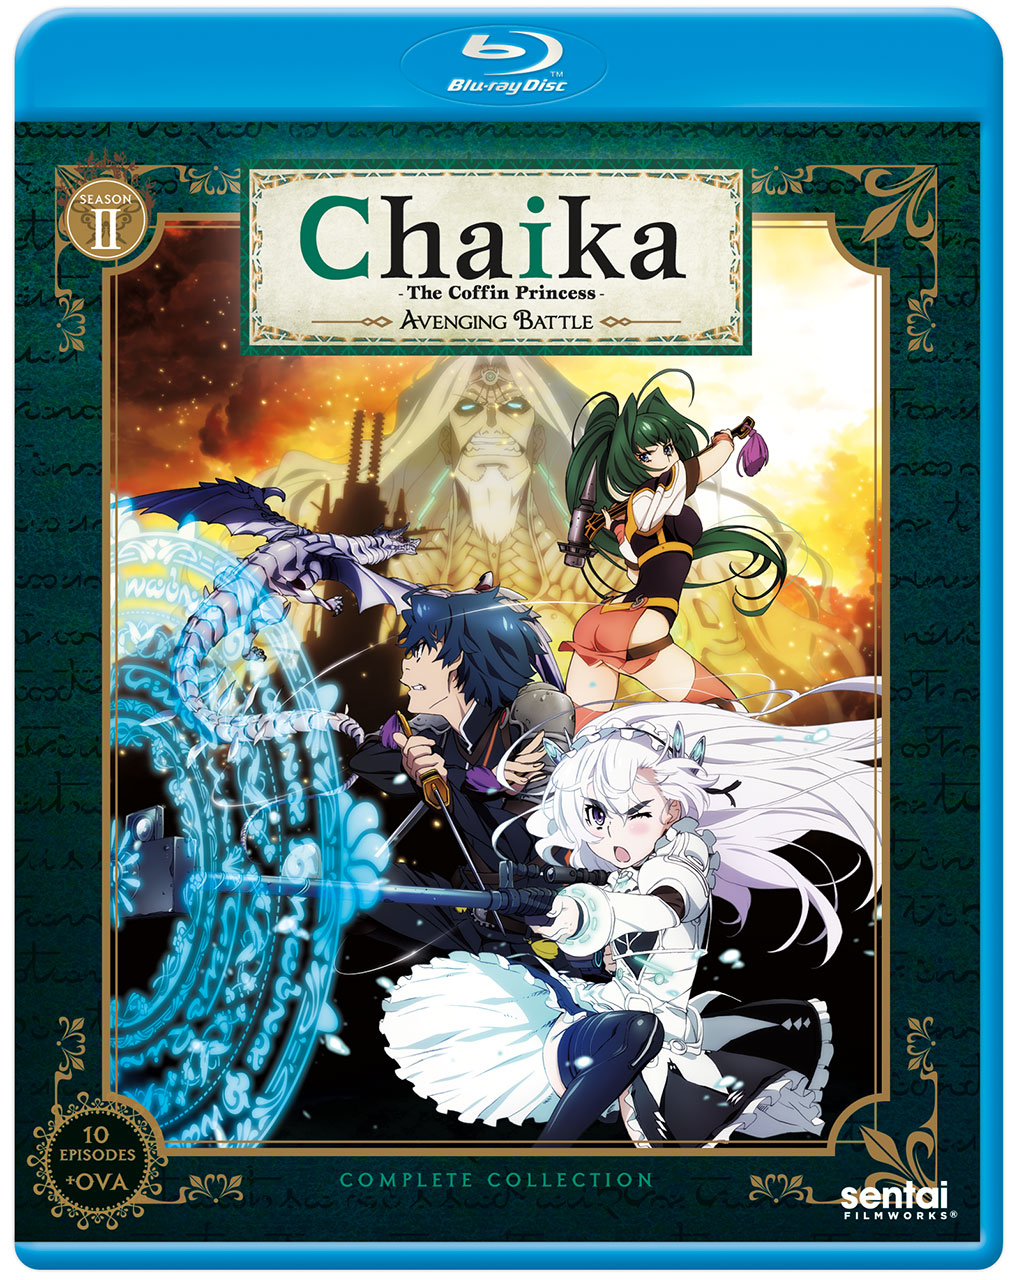 Chaika the Coffin Princess Avenging Battle (Season 2) Blu-ray 814131014399